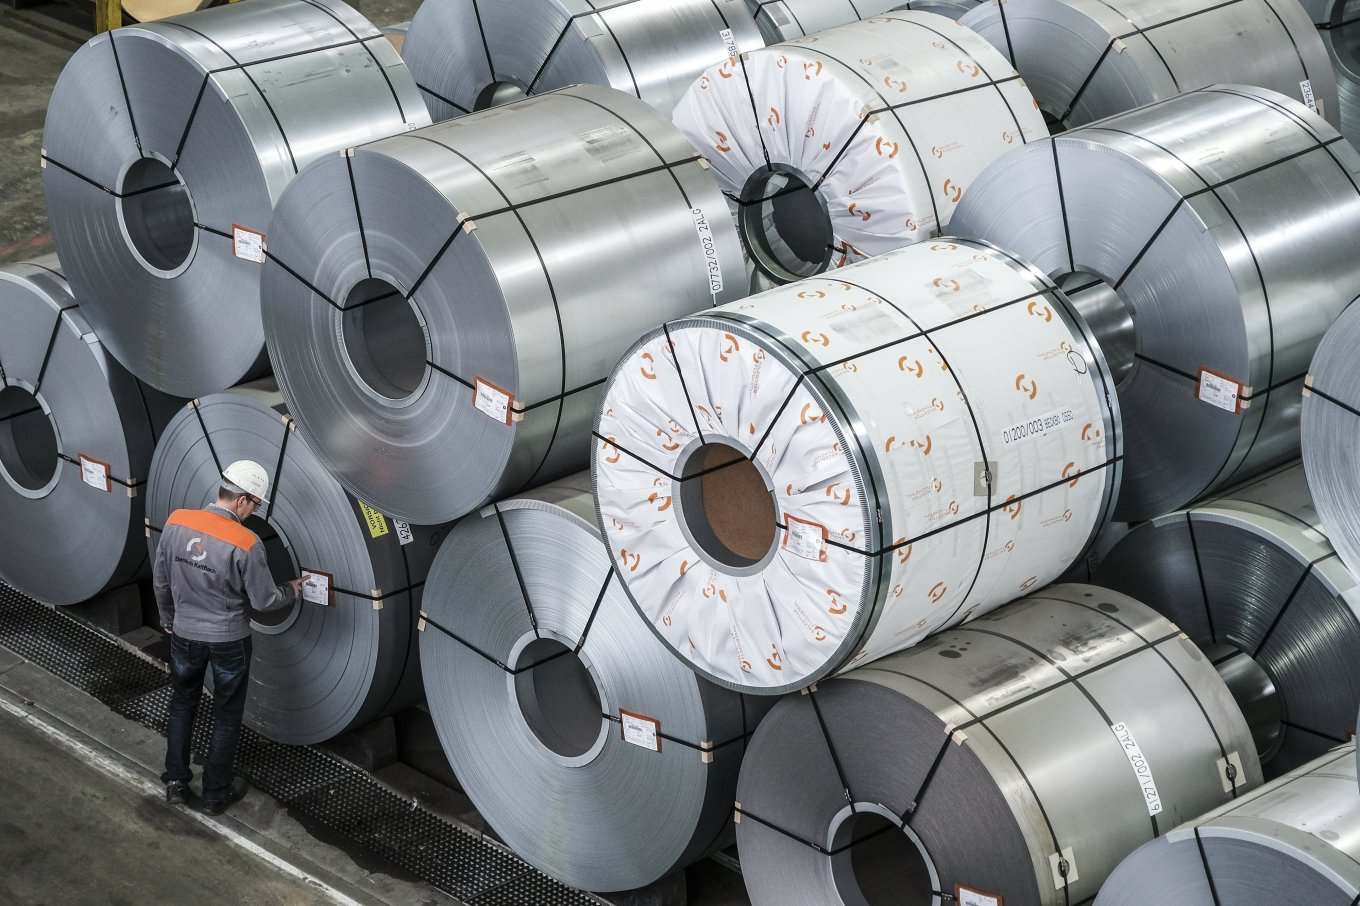 Aluminum Spools - courtesy of Wall Street Journal